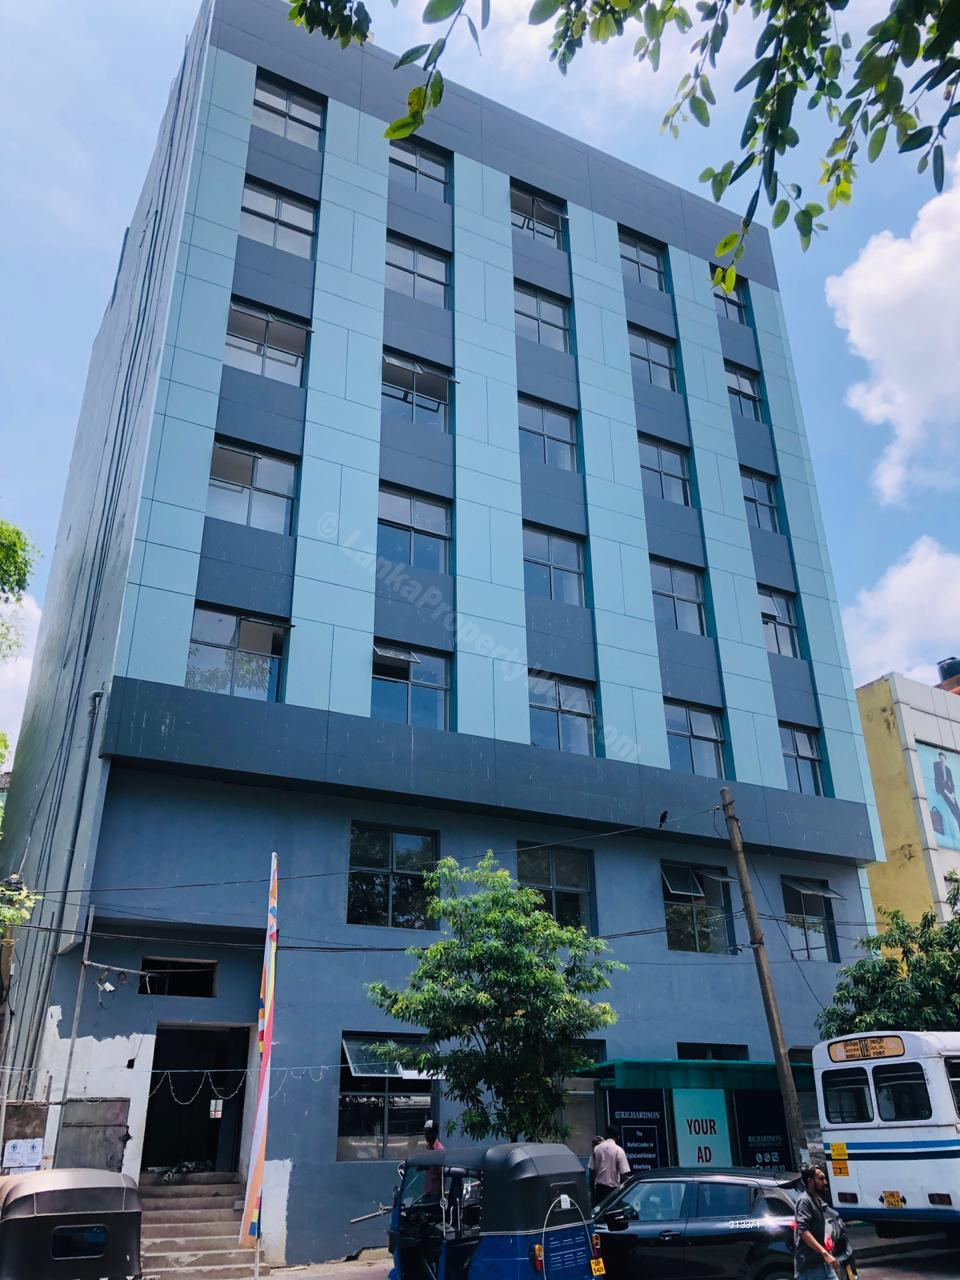 Commercial building for sale in Colombo 7 - Brand New 31,500ft2 Commercial Building facing Ward Place, Maradana Road and Borella Junction